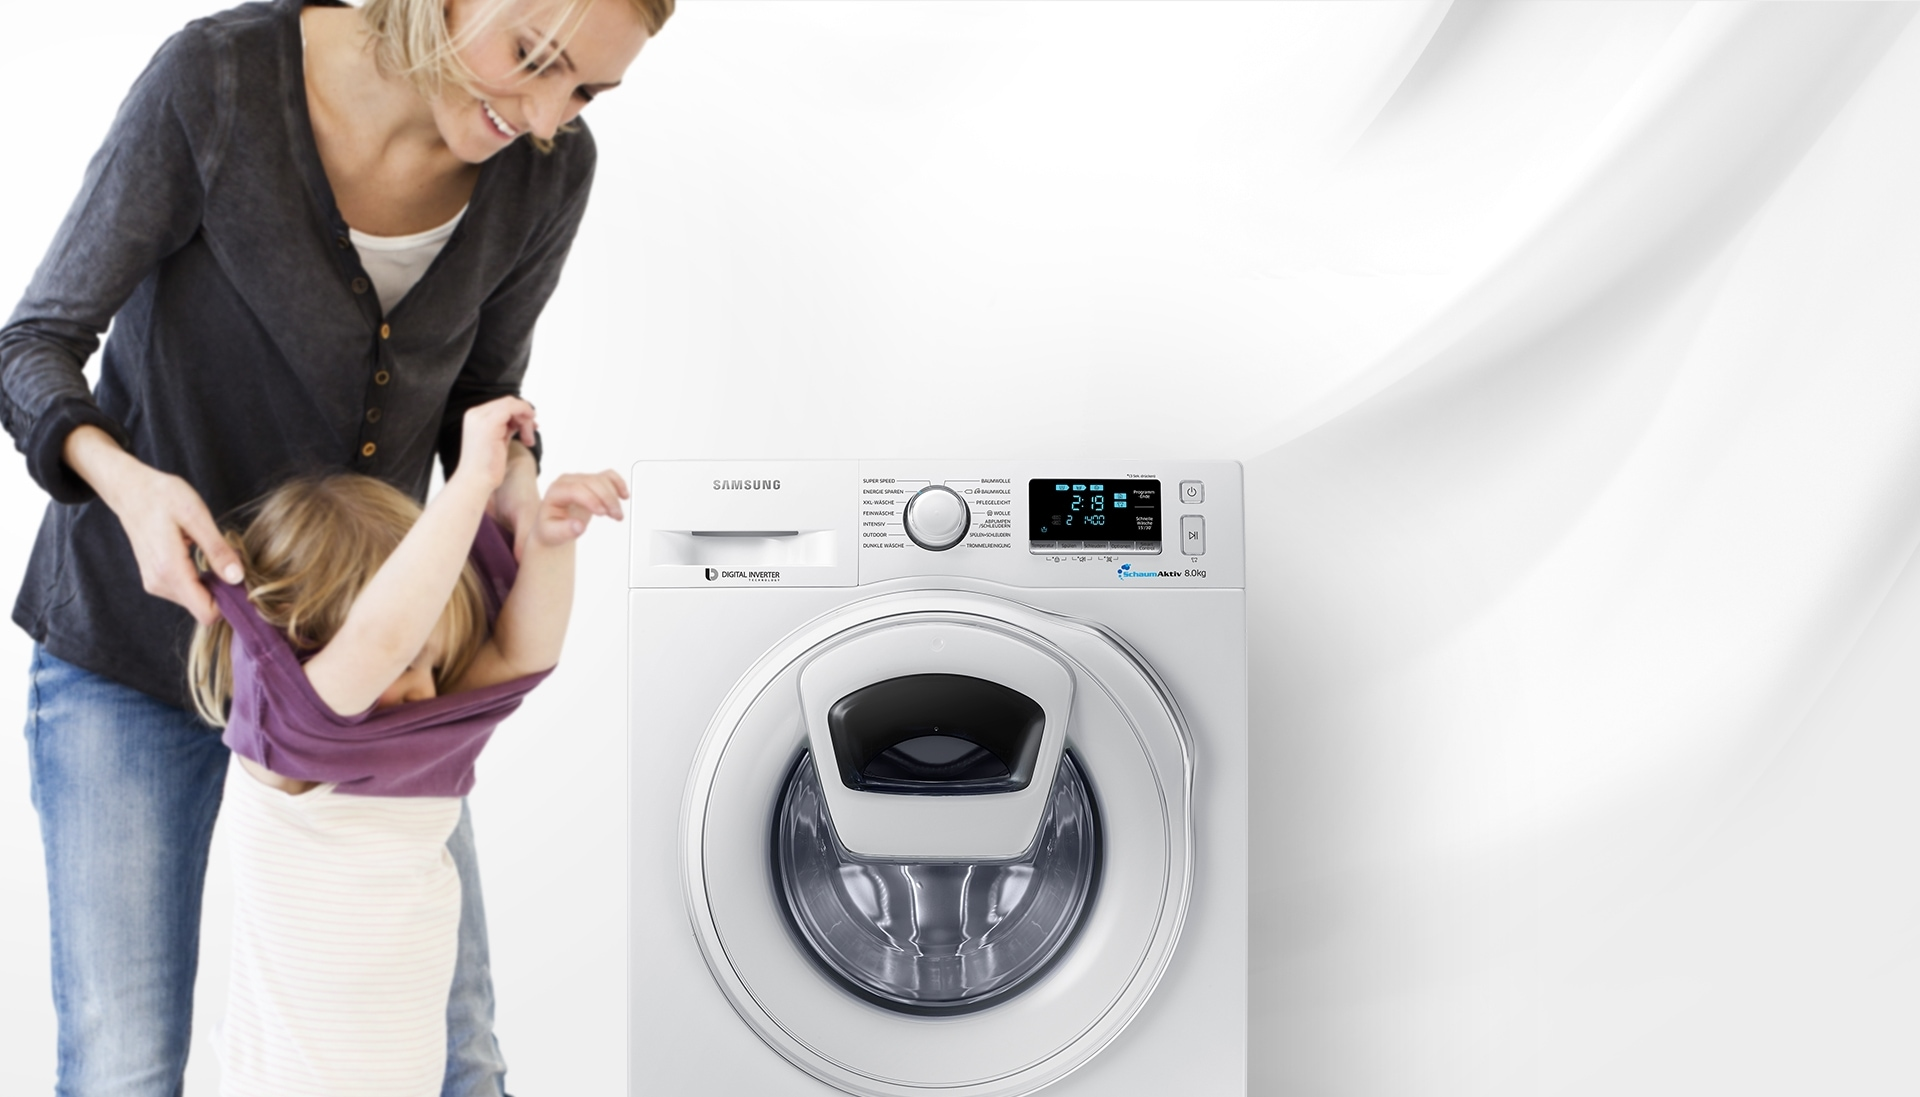 An image of a woman taking off her child's clothes next to a WW6500 washing machine which is in the middle of a cycle.